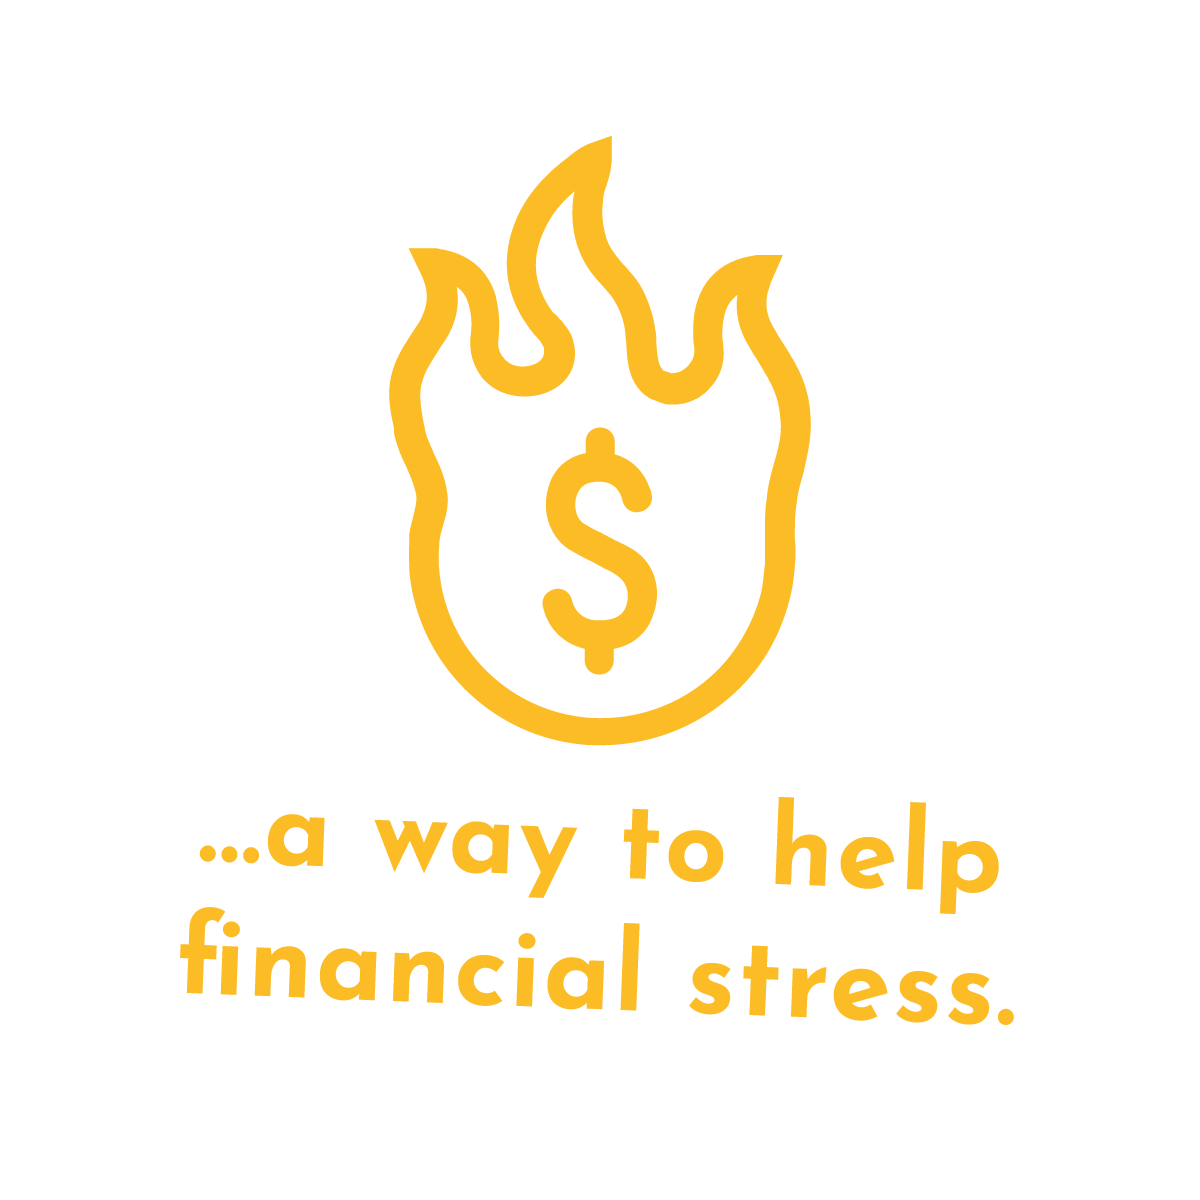 help-financial-stress.png